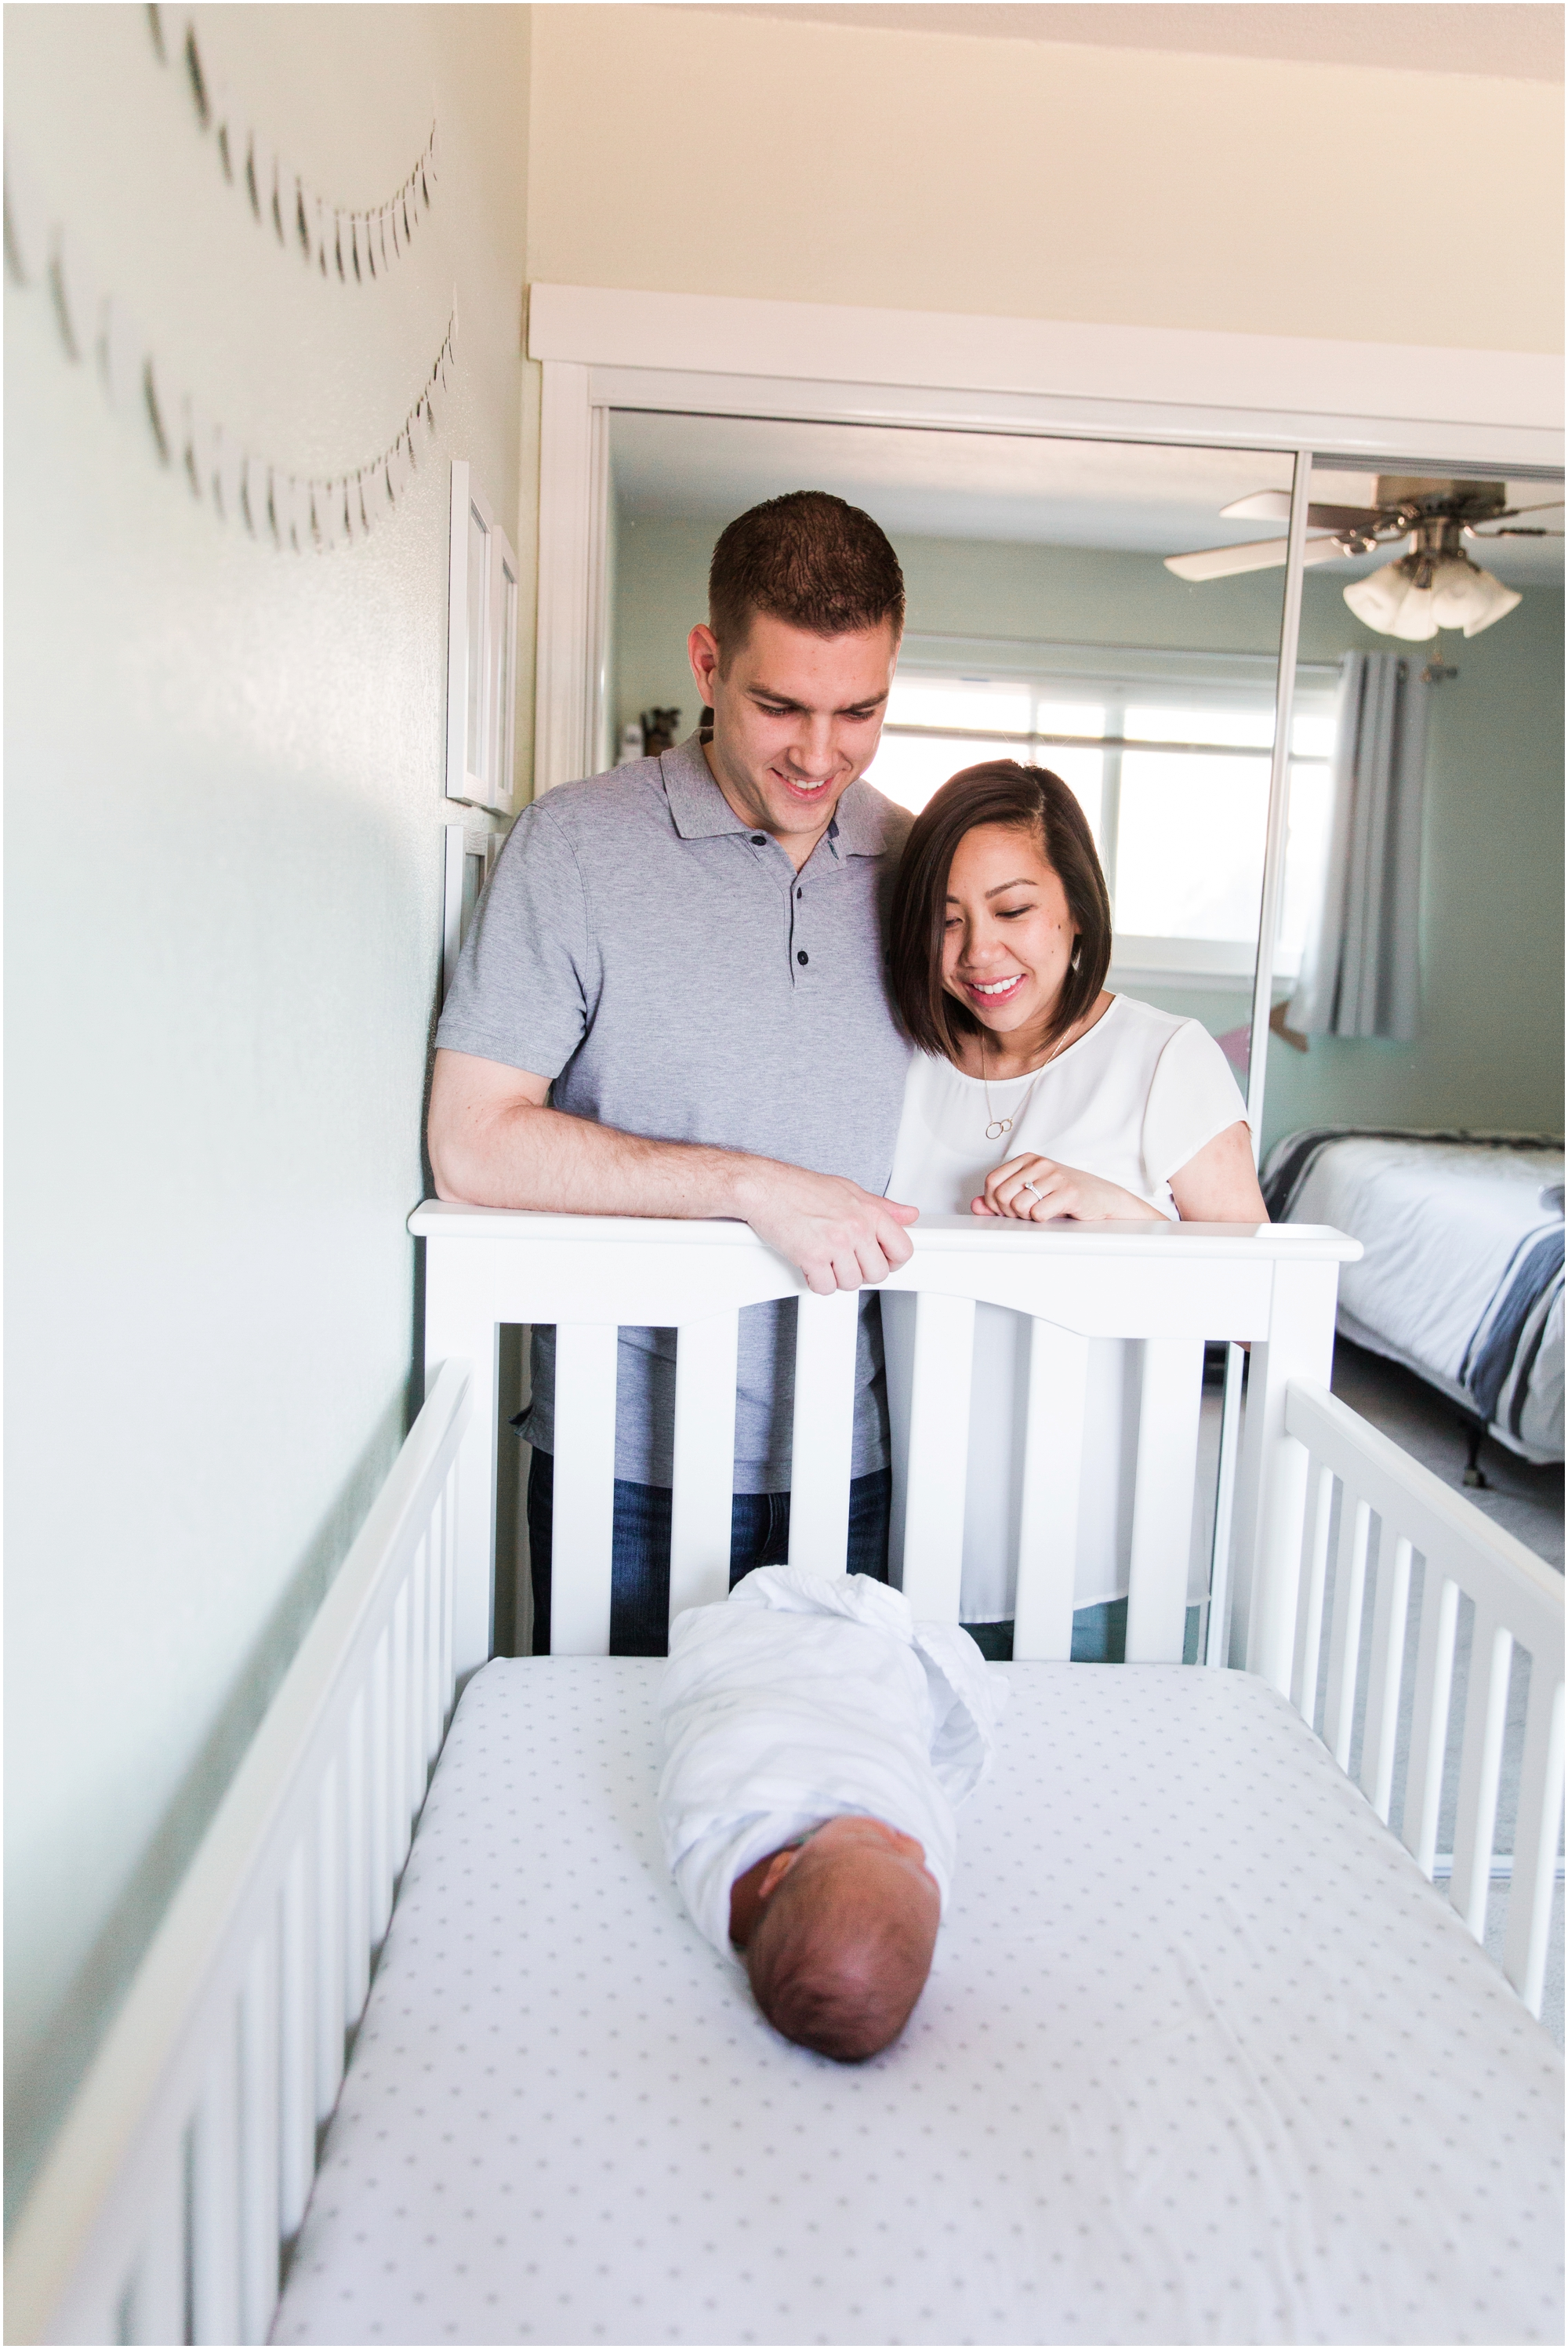 Lifestyle newborn pictures at home by Briana Calderon Photography_2415.jpg